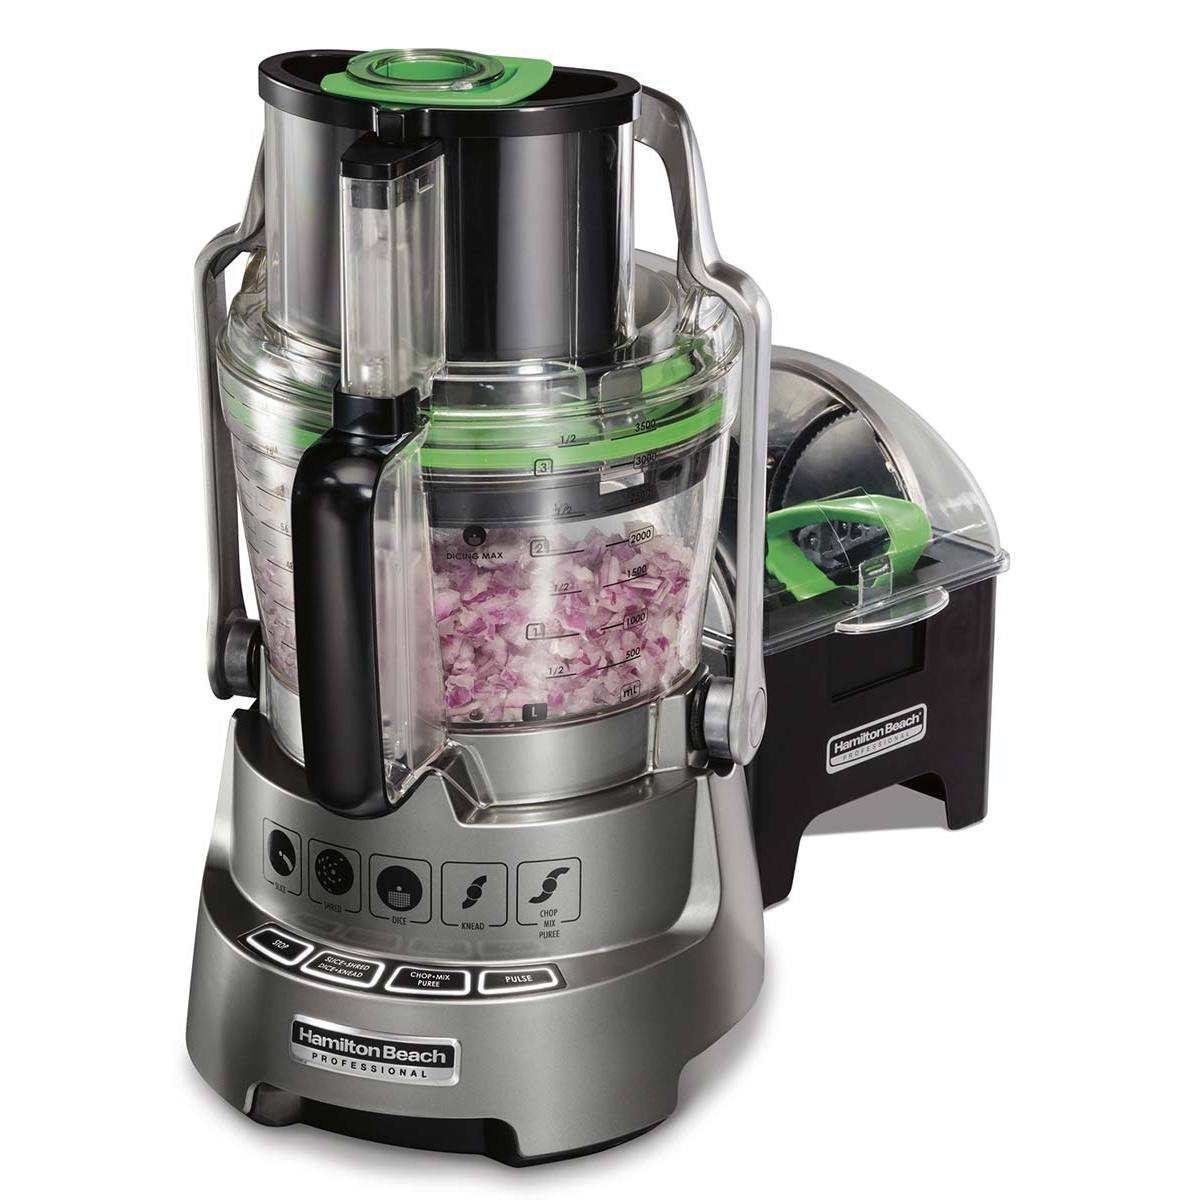 14-Cup Hamilton Beach® Professional Food Processor with Big Mouth®, Dicing Capability (70825)